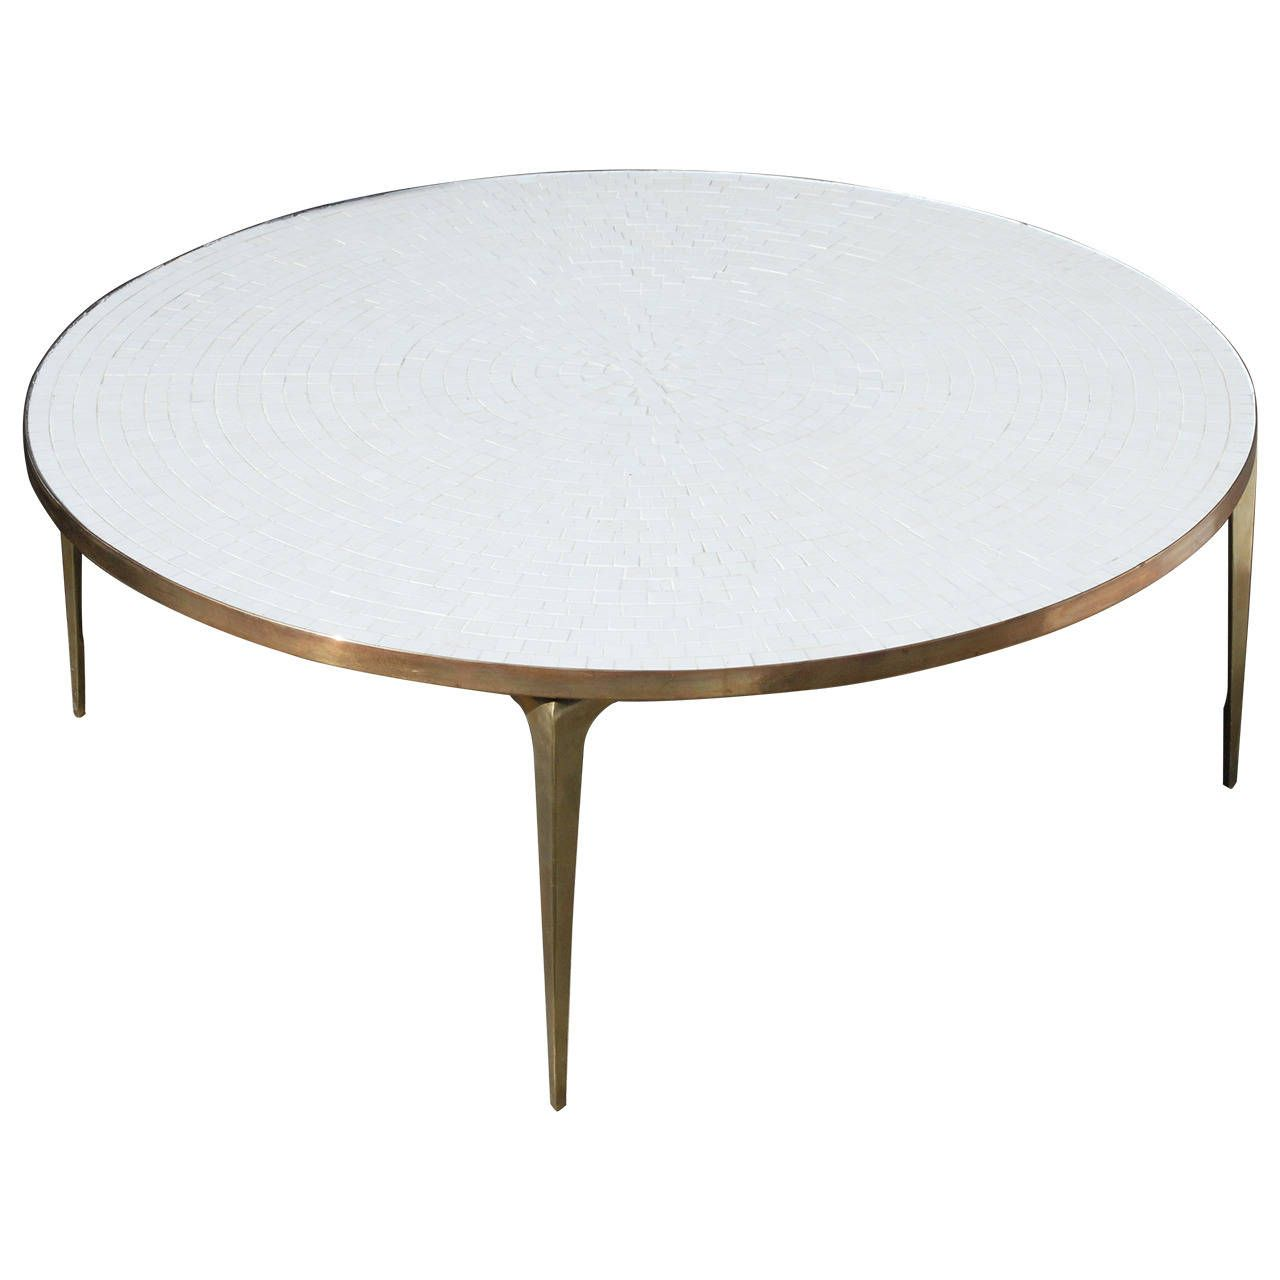 Round Brass And White Mosaic Coffee Table 1stdibs Com Coffee Table Mosaic Coffee Table Round Coffee Table [ 1280 x 1280 Pixel ]